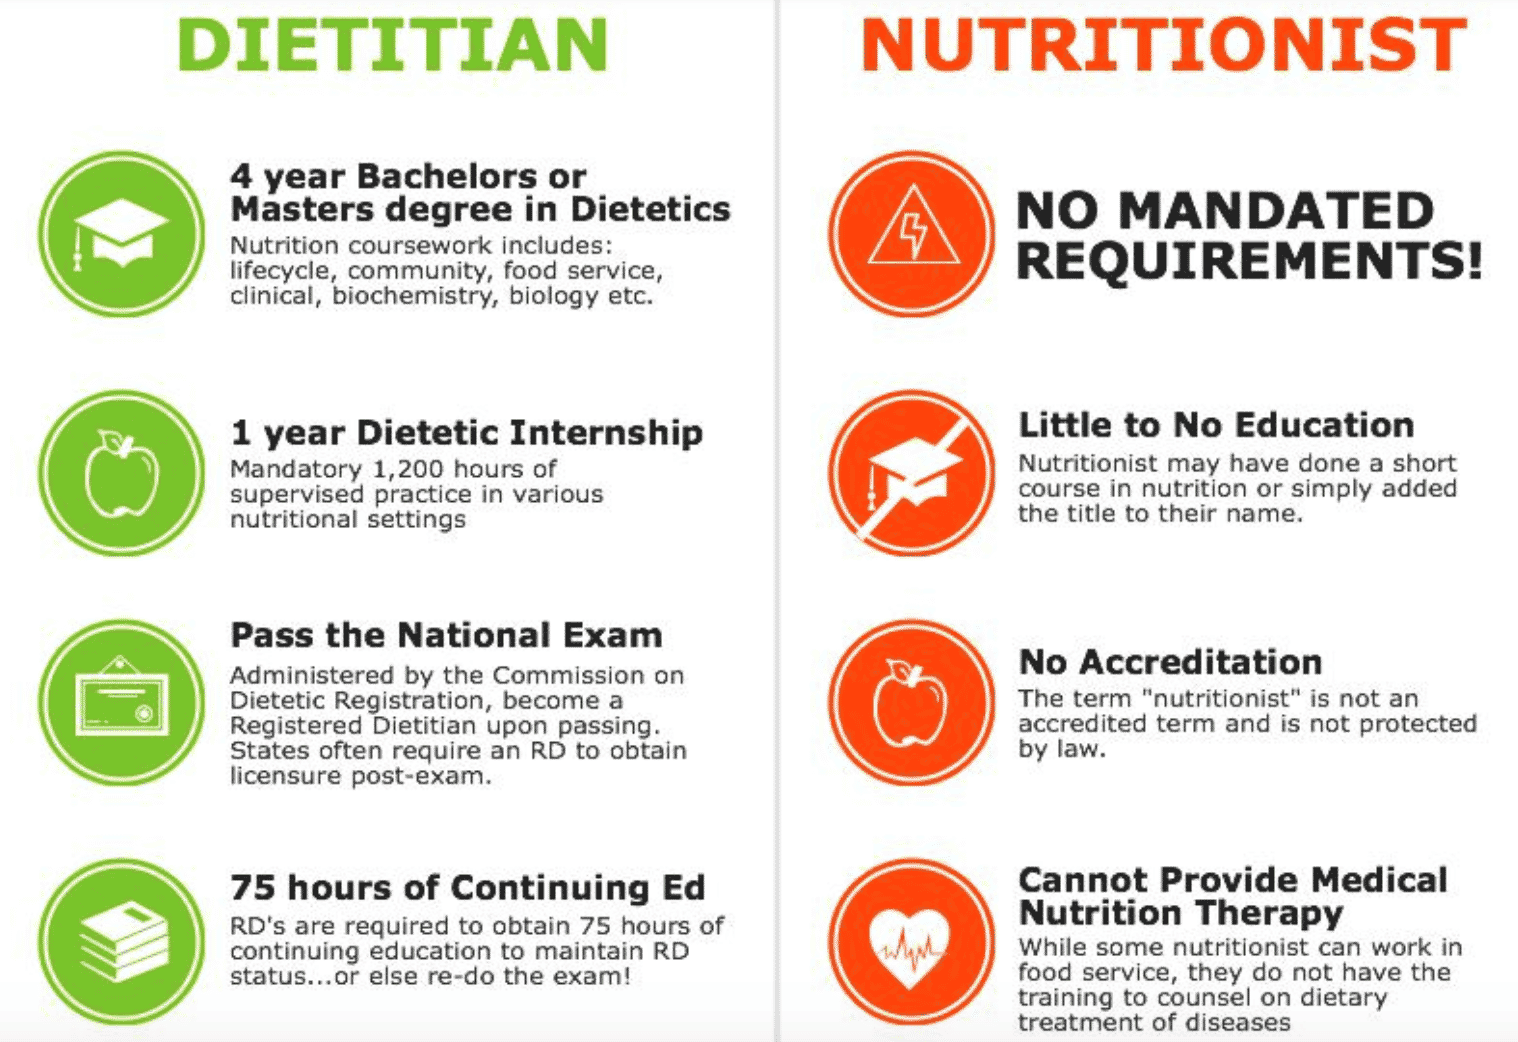 What's the Difference Between Dietitian and Nutritionist?